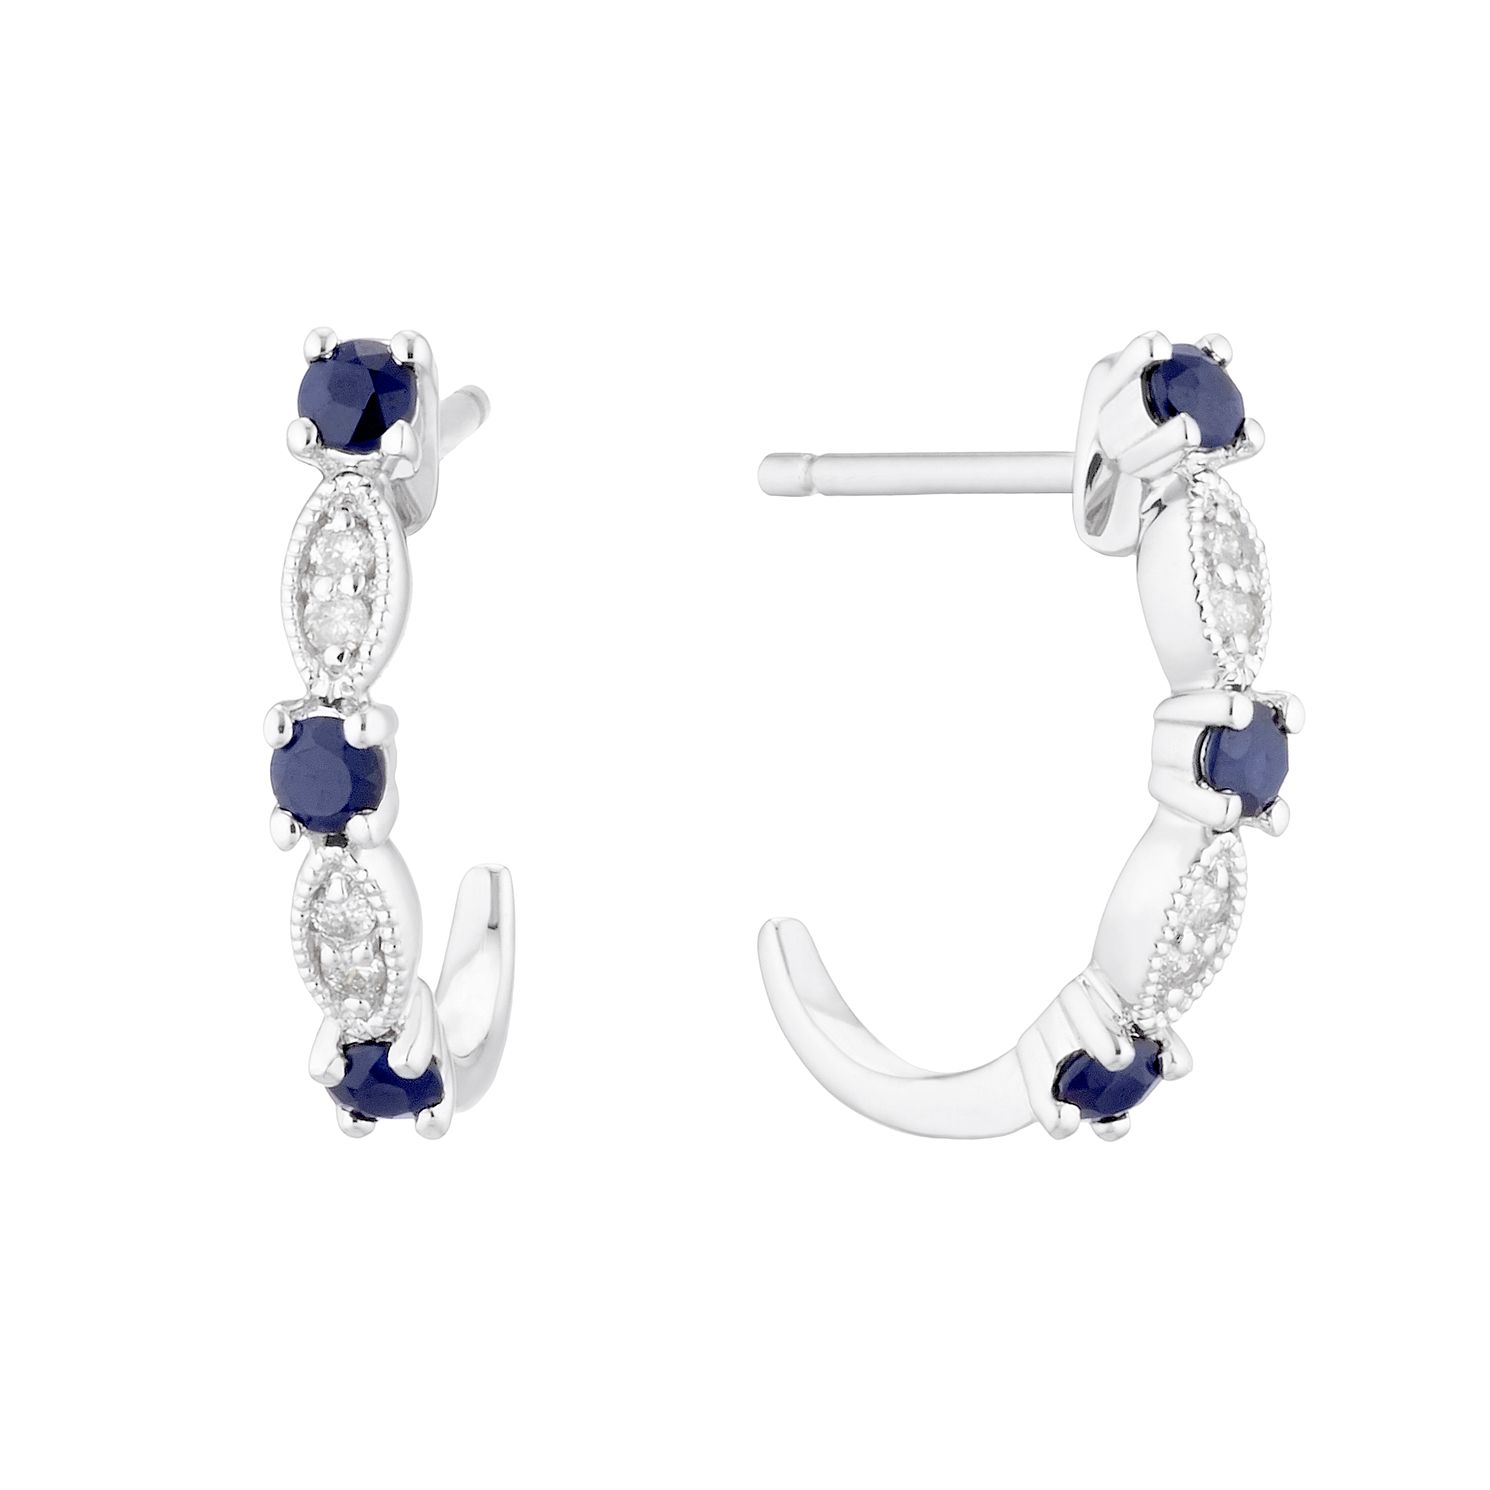 9ct White Gold Sapphire & Diamond Hoop Earrings - Product number 5173299